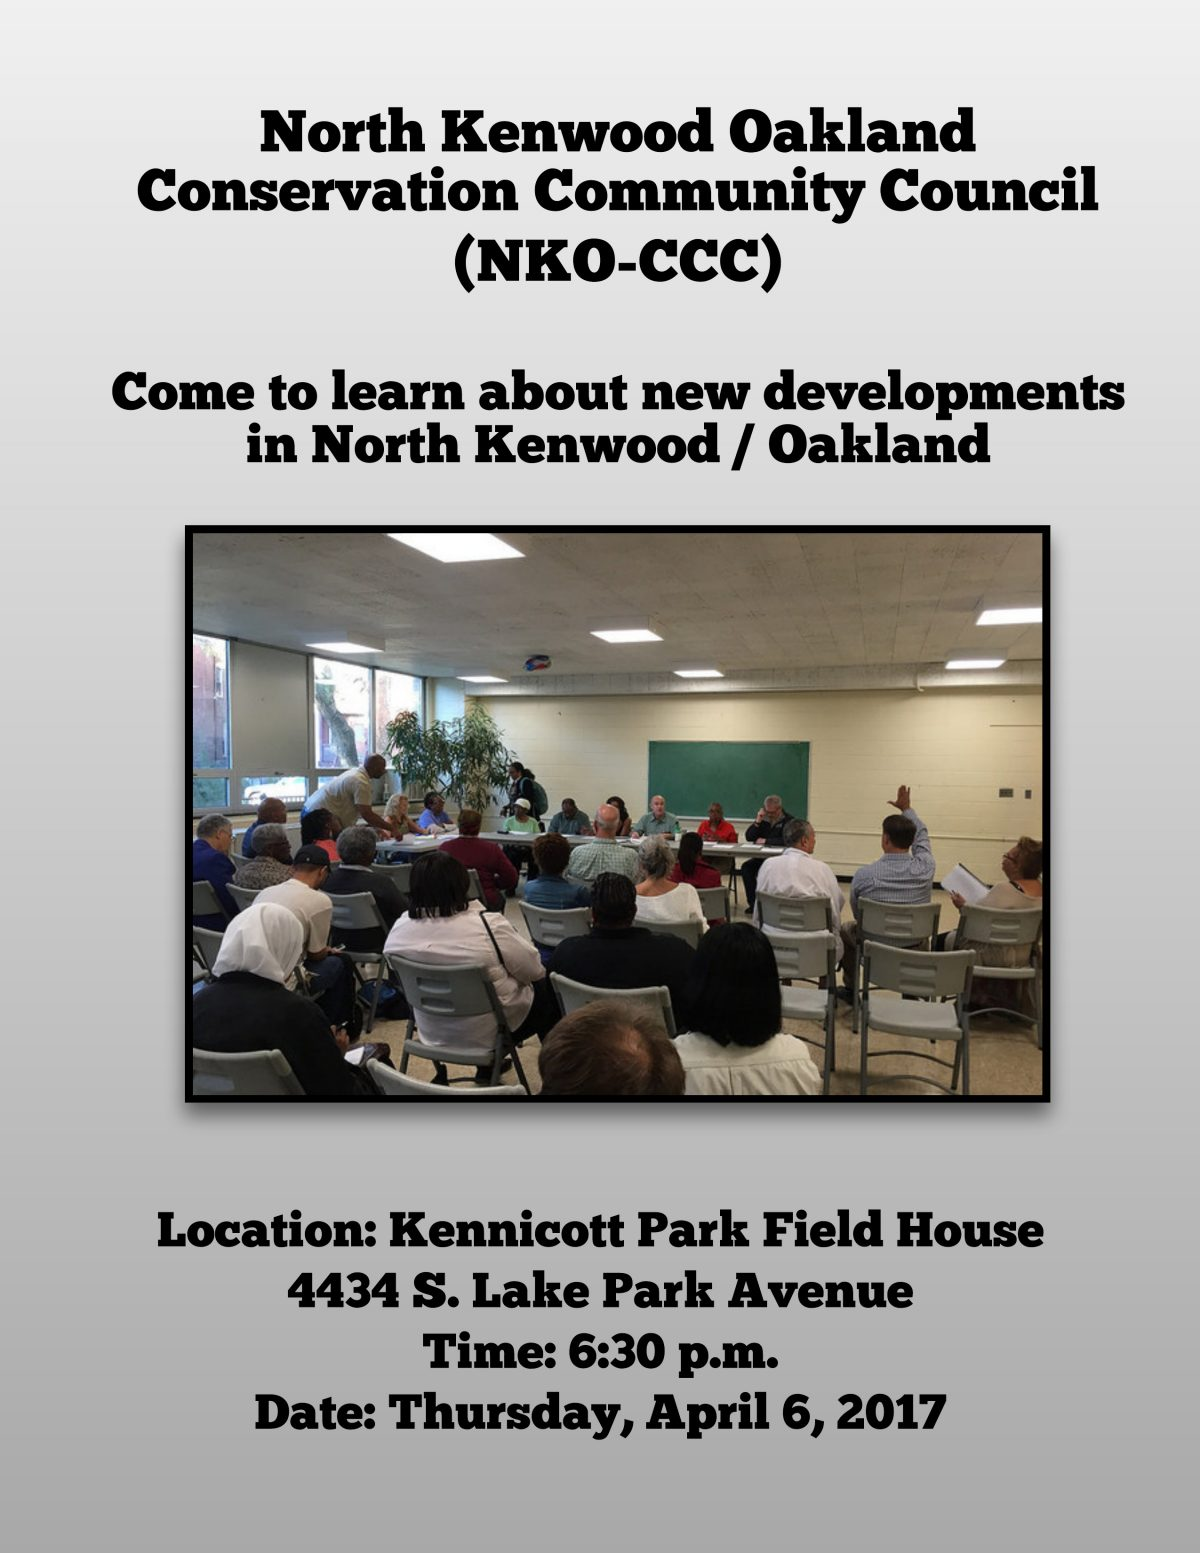 NKO-CCC Meeting - April 6, 2017